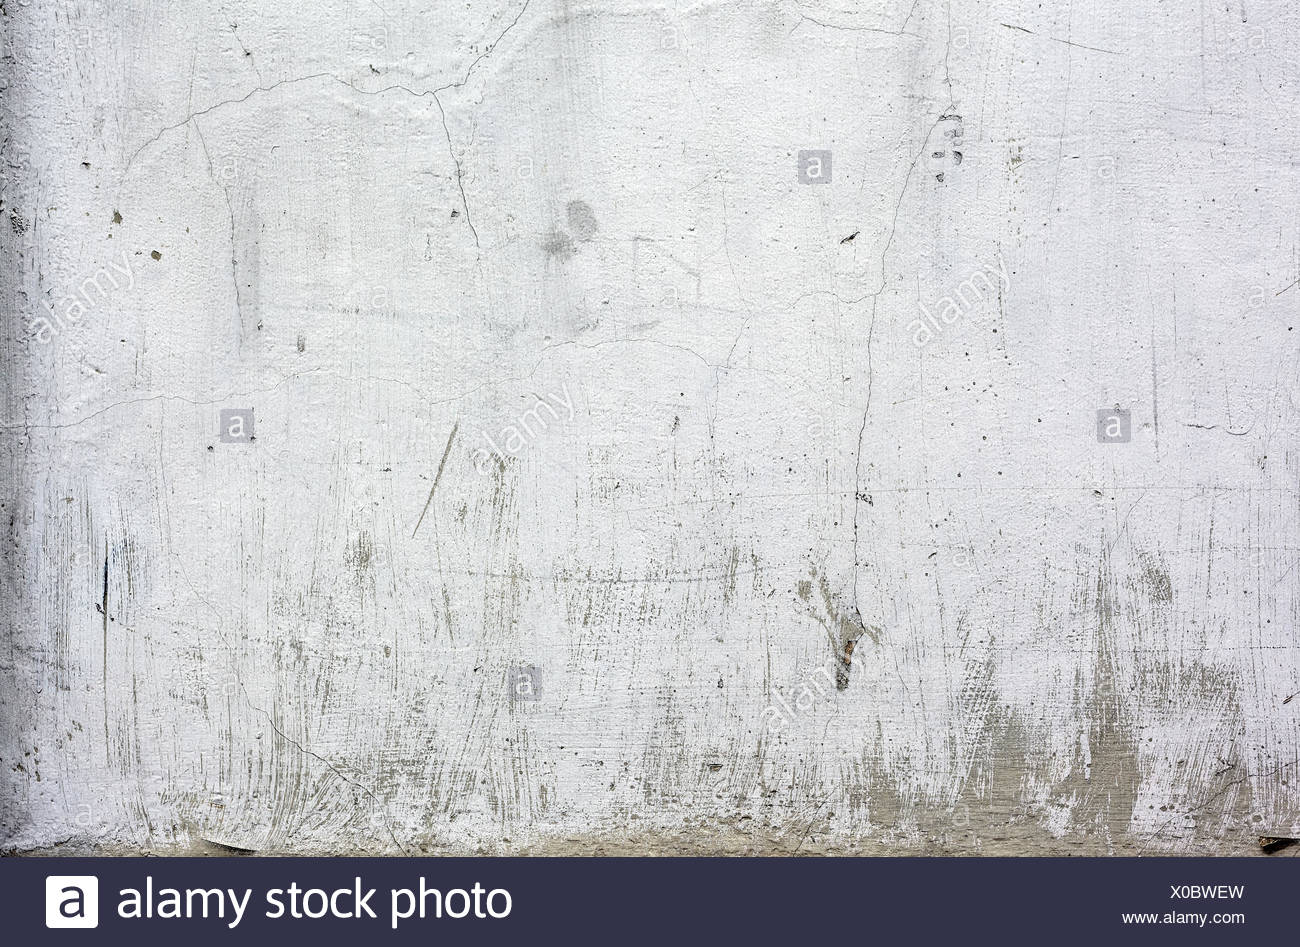 detail closeup stone rough black swarthy jetblack deep black concrete wall dirt material drug anaesthetic addictive drug - Stock Image